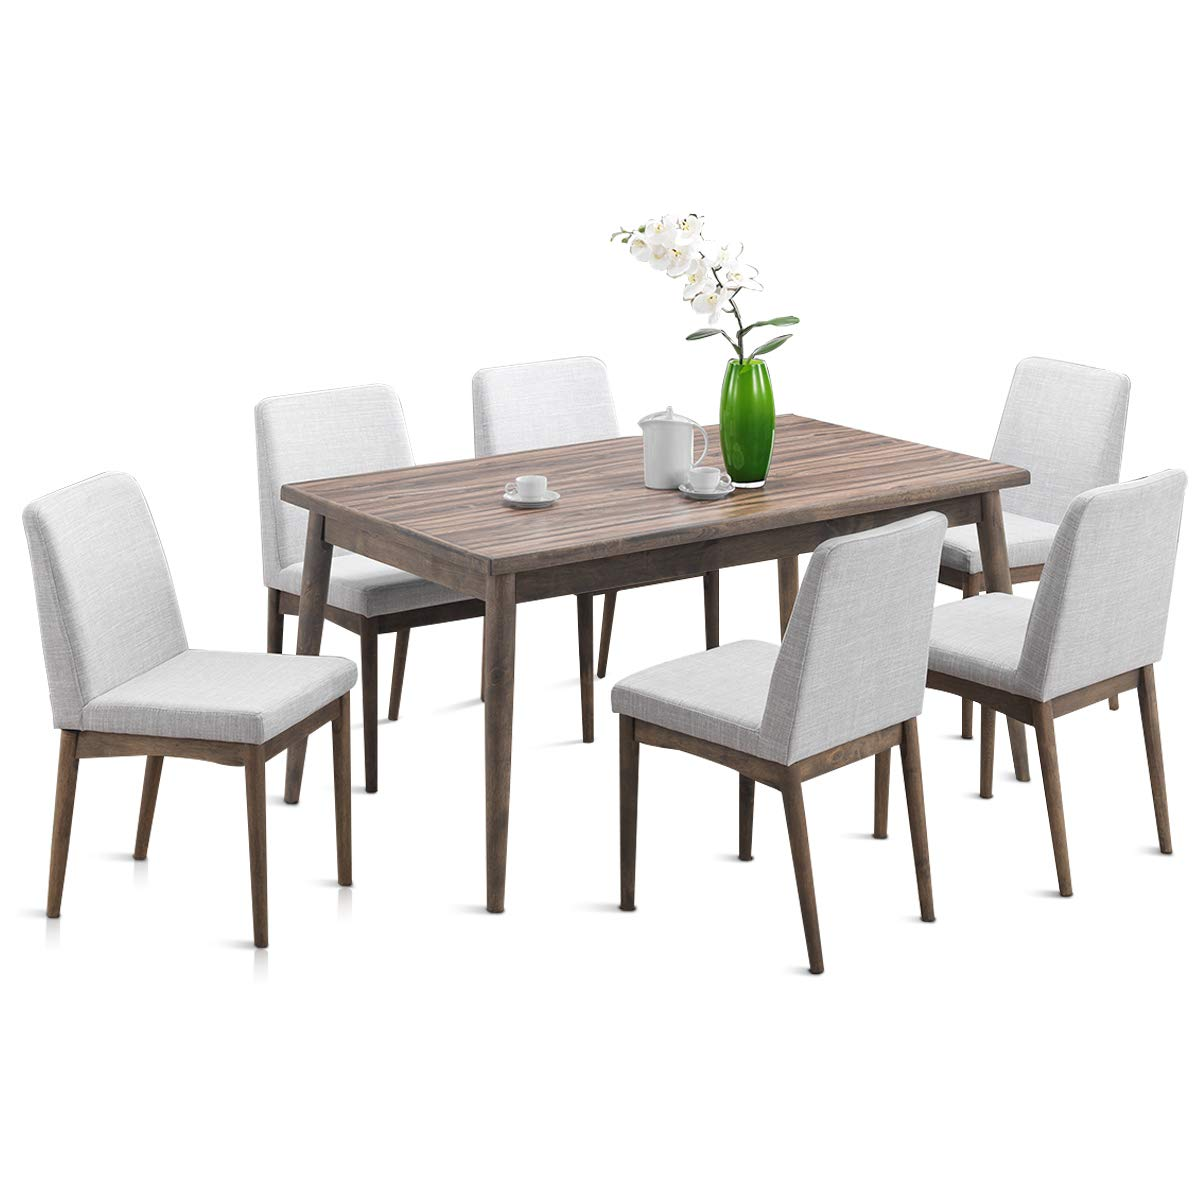 Giantex 7 Pcs Dining Table and Chairs Kitchen Dining Room Table Set with Wood Legs and Upholstered Seat 7 pcs Set